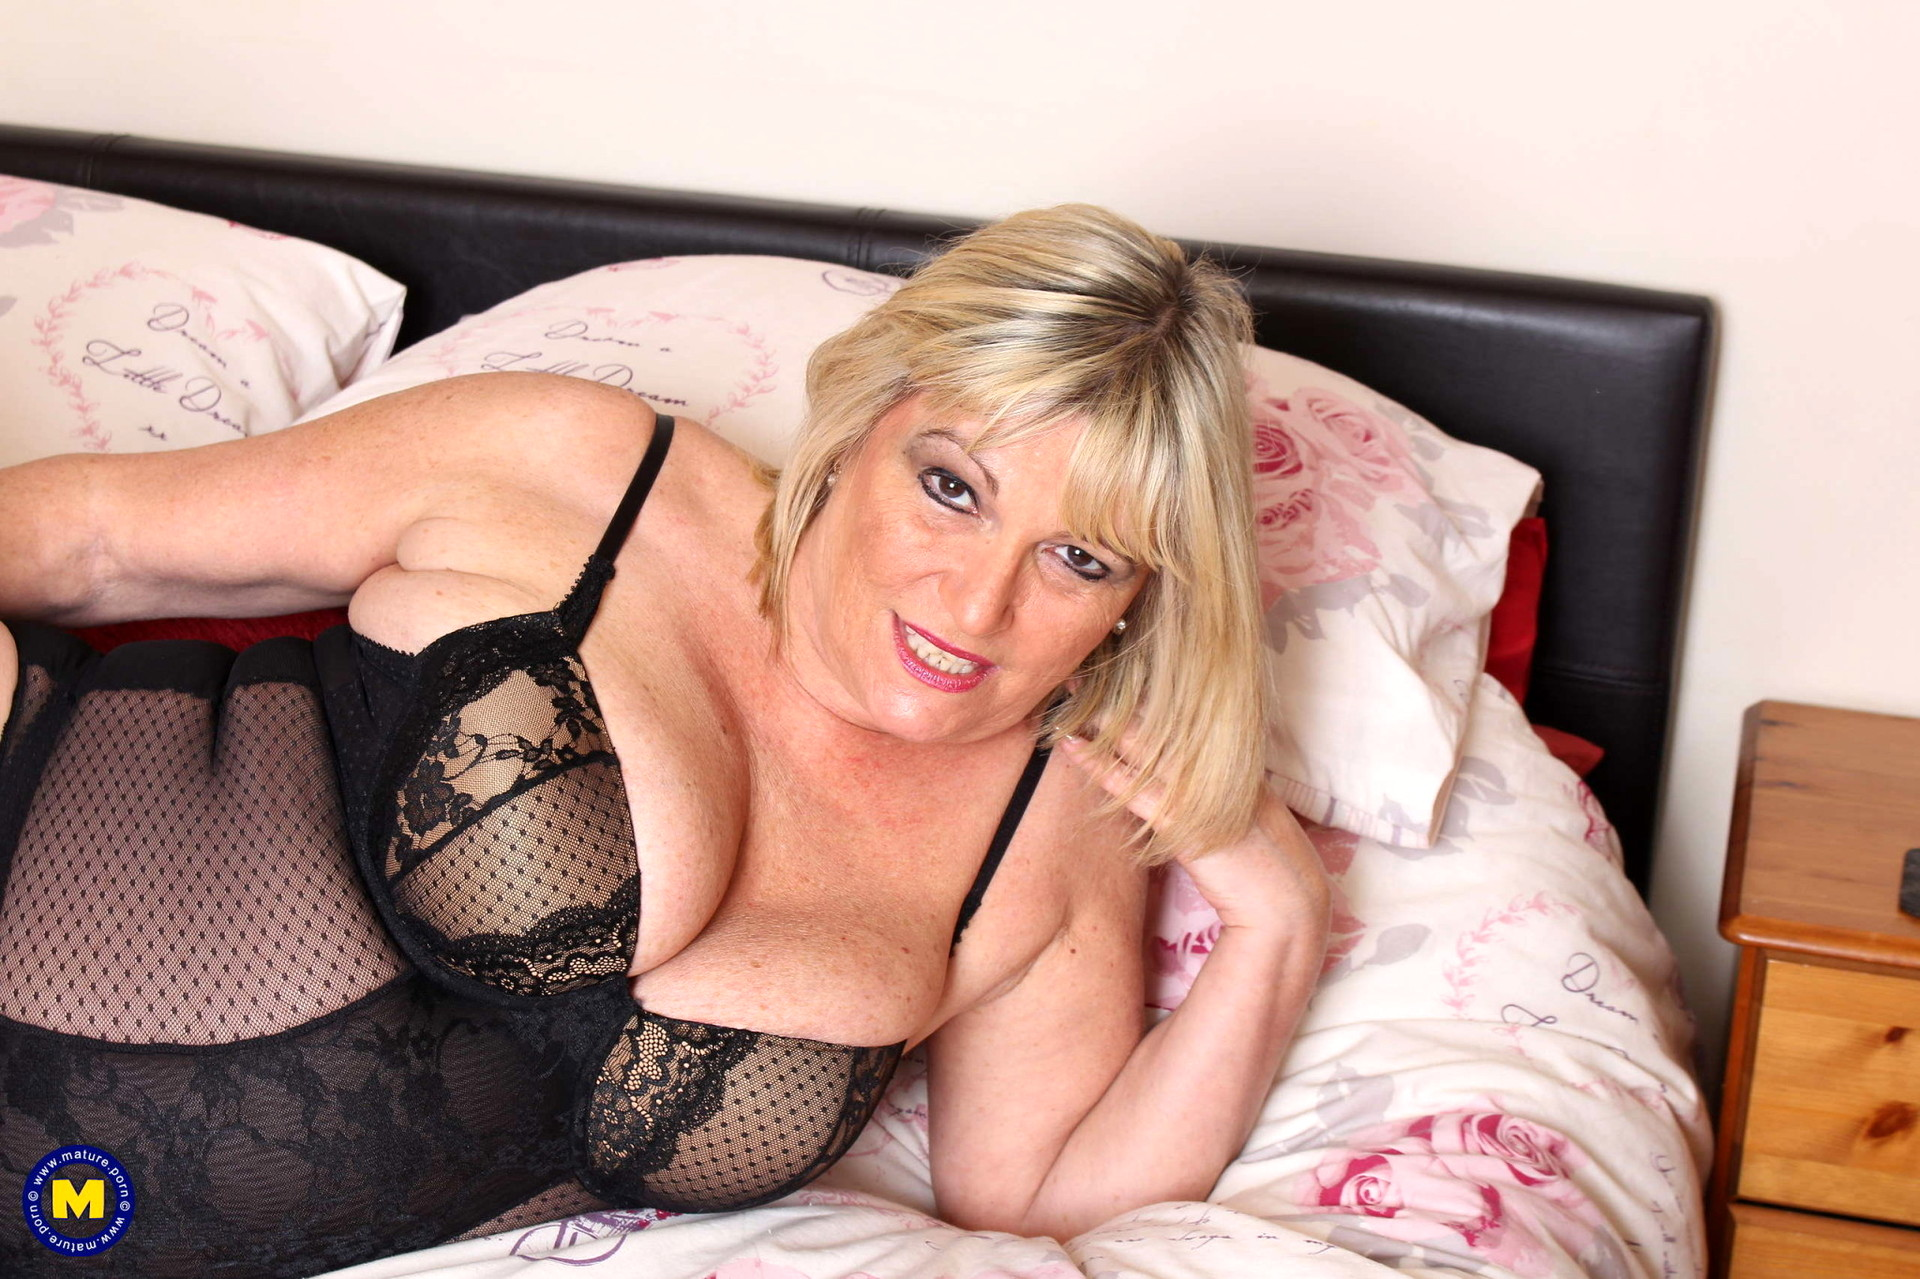 Pin on daily milf photo's